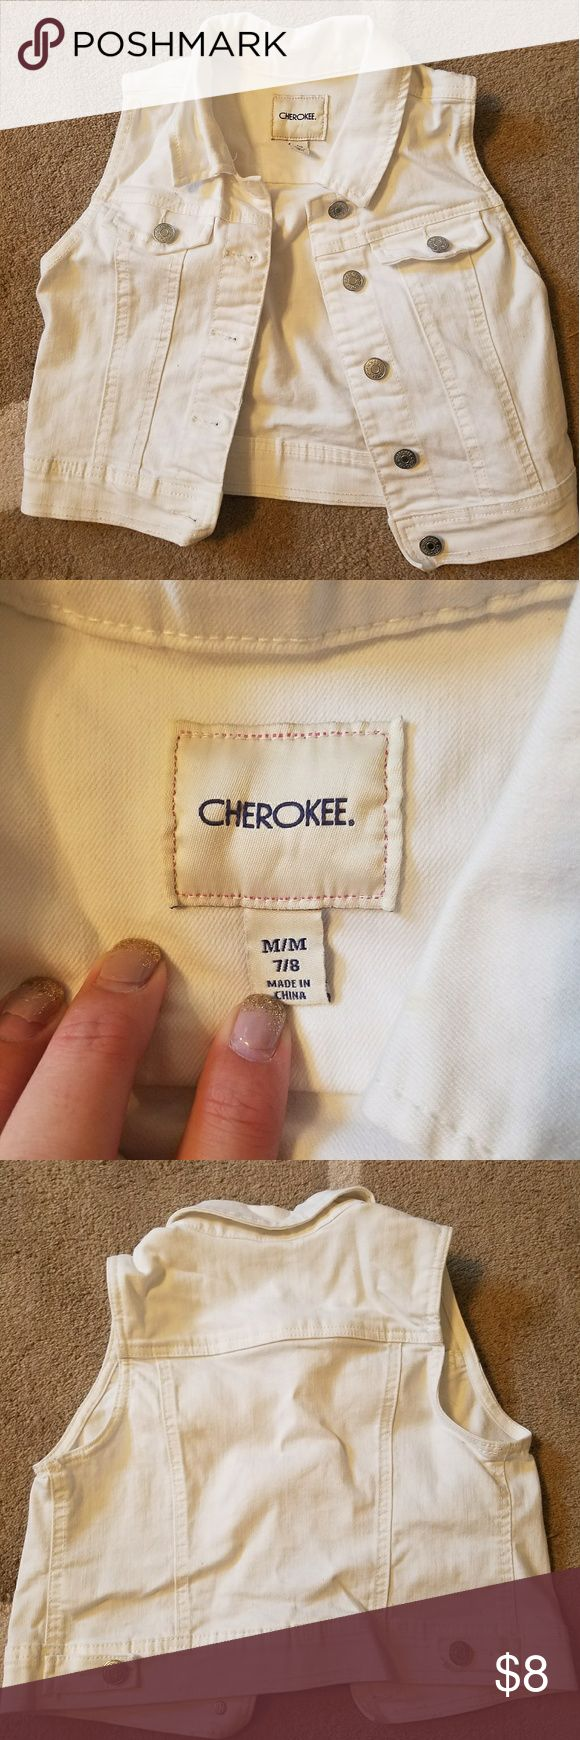 White jean vest M Cherokee white jean vest with buttons. Size M 7/8. Like new. Cherokee Shirts & Tops